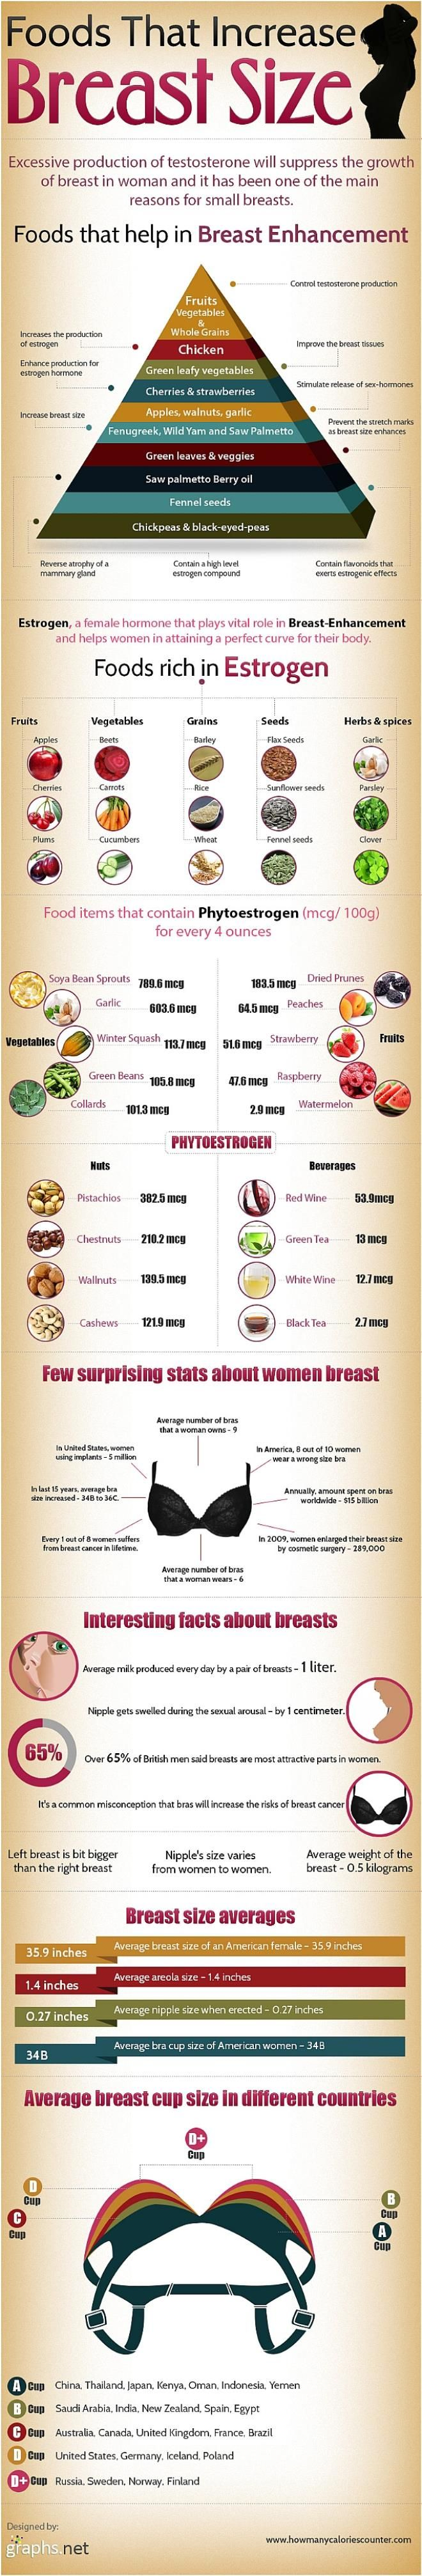 http://www.modernghana.com/lifestyle/4579/16/foods-that-increase-breast-size.html